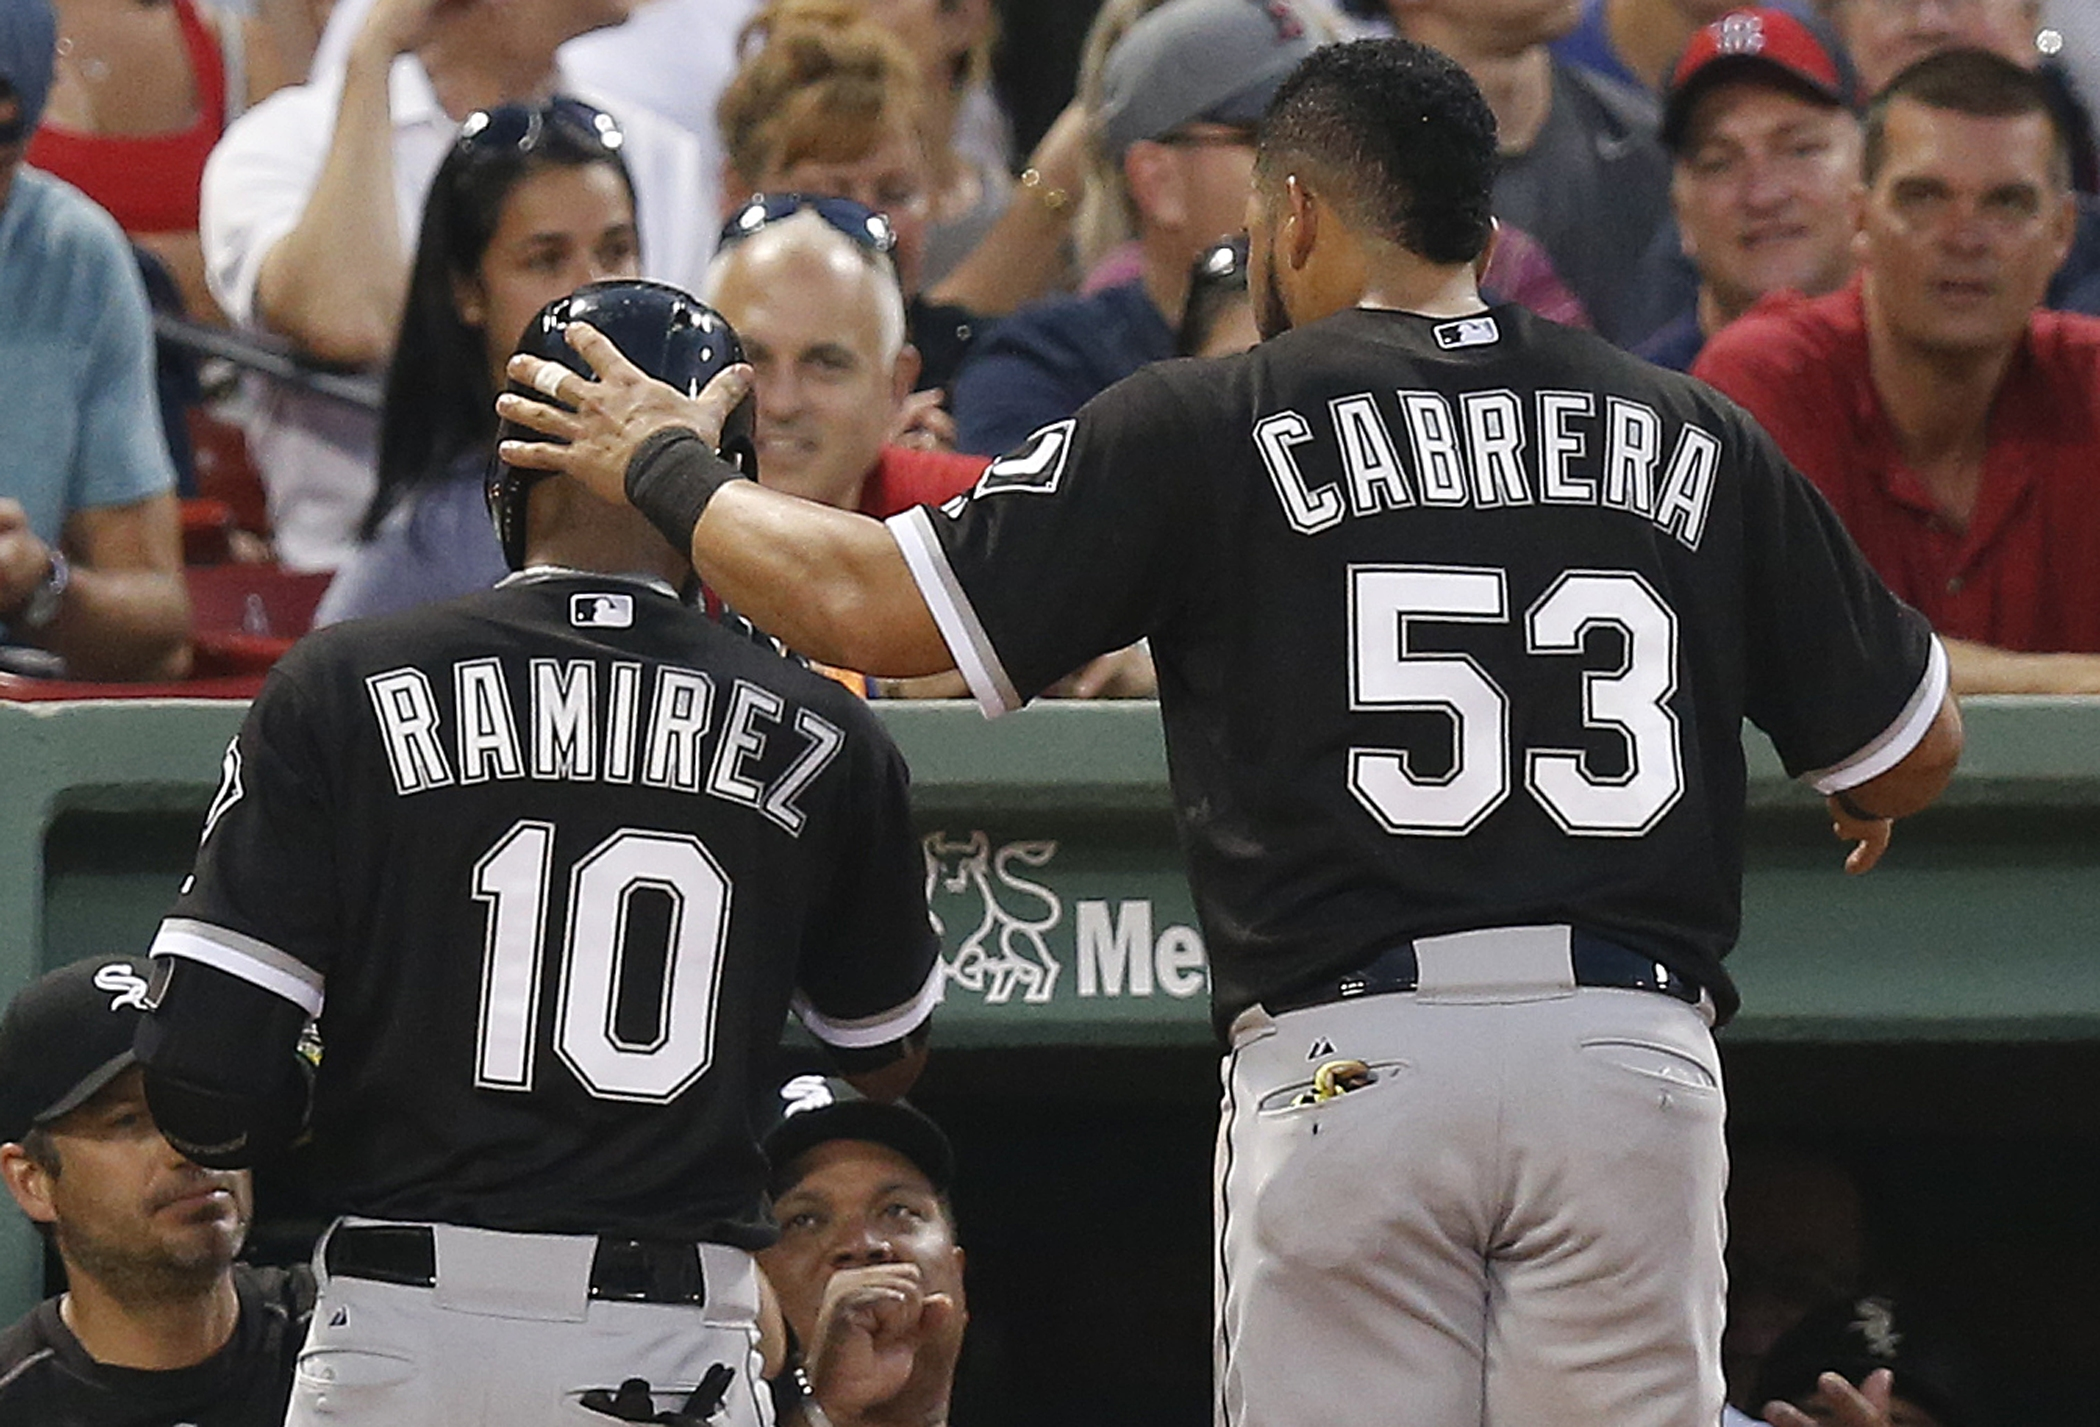 Chicago White Sox's Melky Cabrera (53) congratulates teammate Alexei Ramirez after Ramirez's solo home run during the third inning of a baseball game against the Boston Red Sox in Boston, Wednesday, July 29, 2015. (AP Photo/Michael Dwyer)